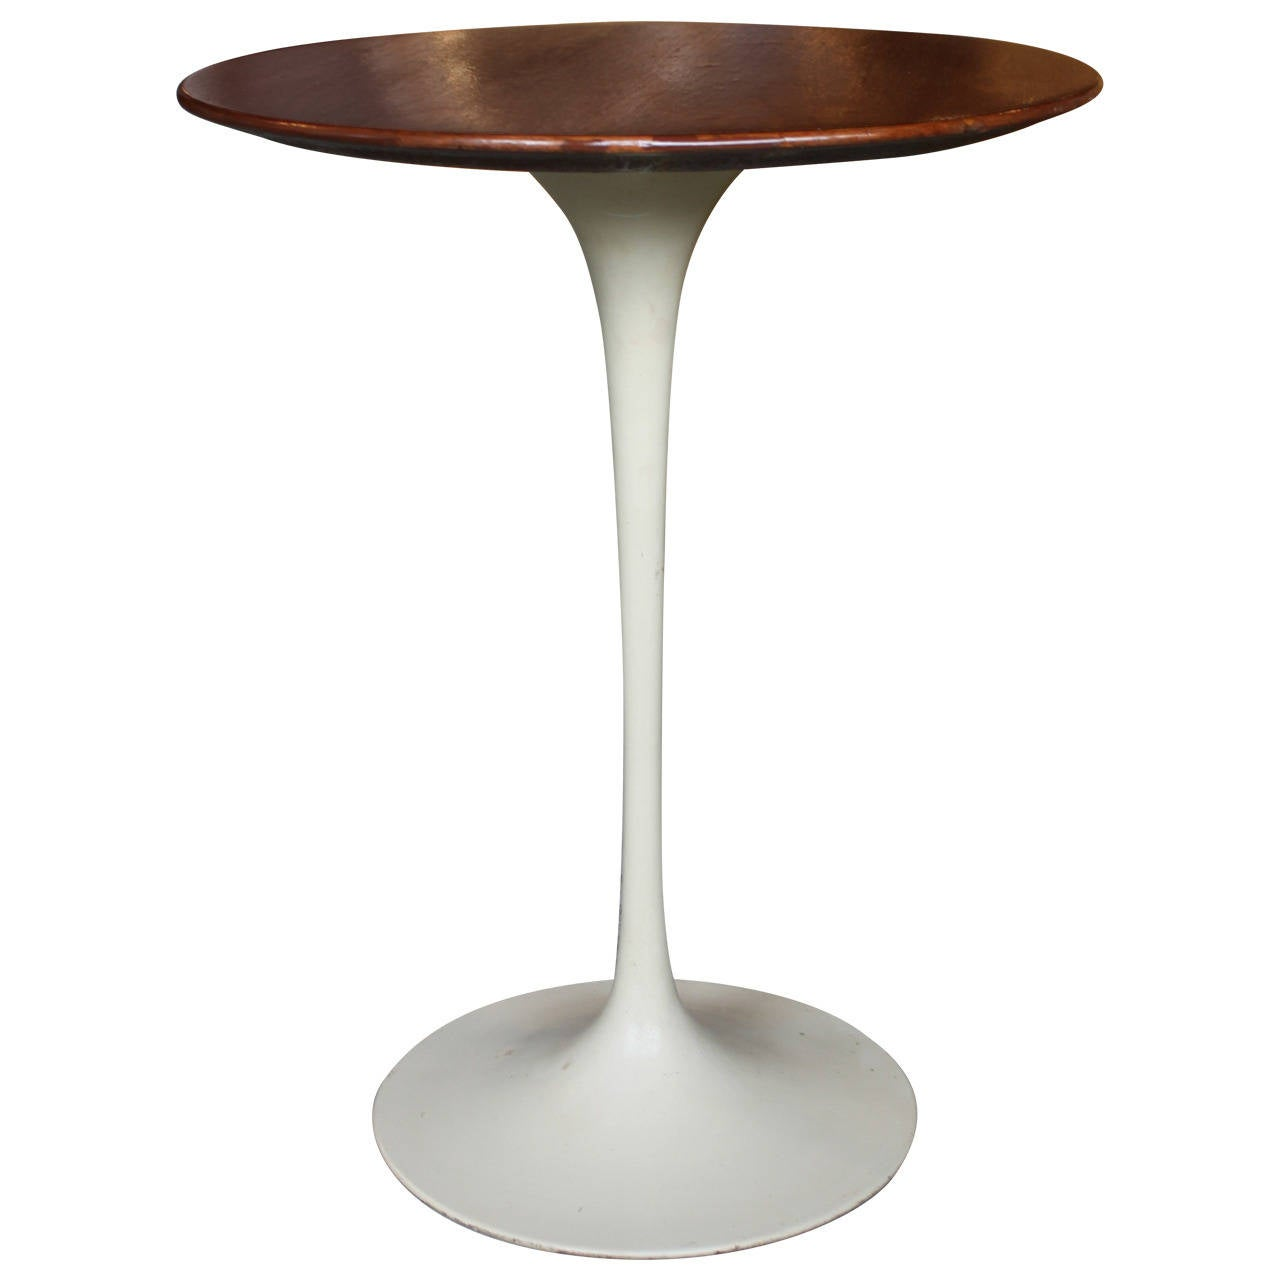 vintage knoll saarinen tulip walnut wood top side table at 1stdibs. Black Bedroom Furniture Sets. Home Design Ideas